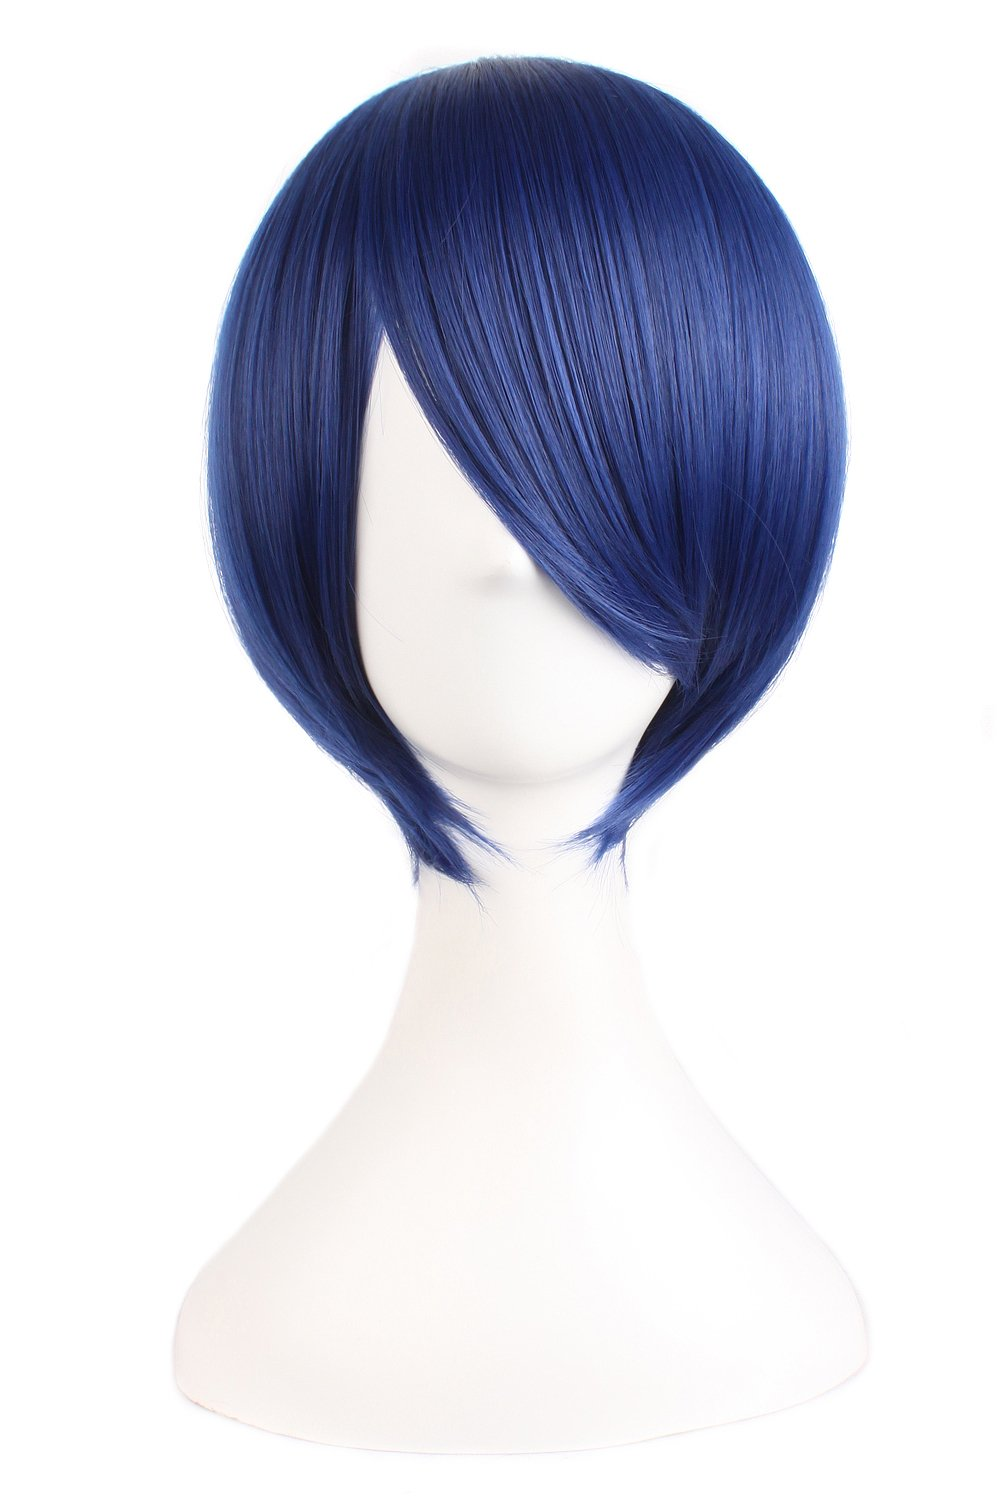 MapofBeauty 12''/30cm Short Straight Cosplay Costume Wig Party Wig (Mixed Blue) by MapofBeauty